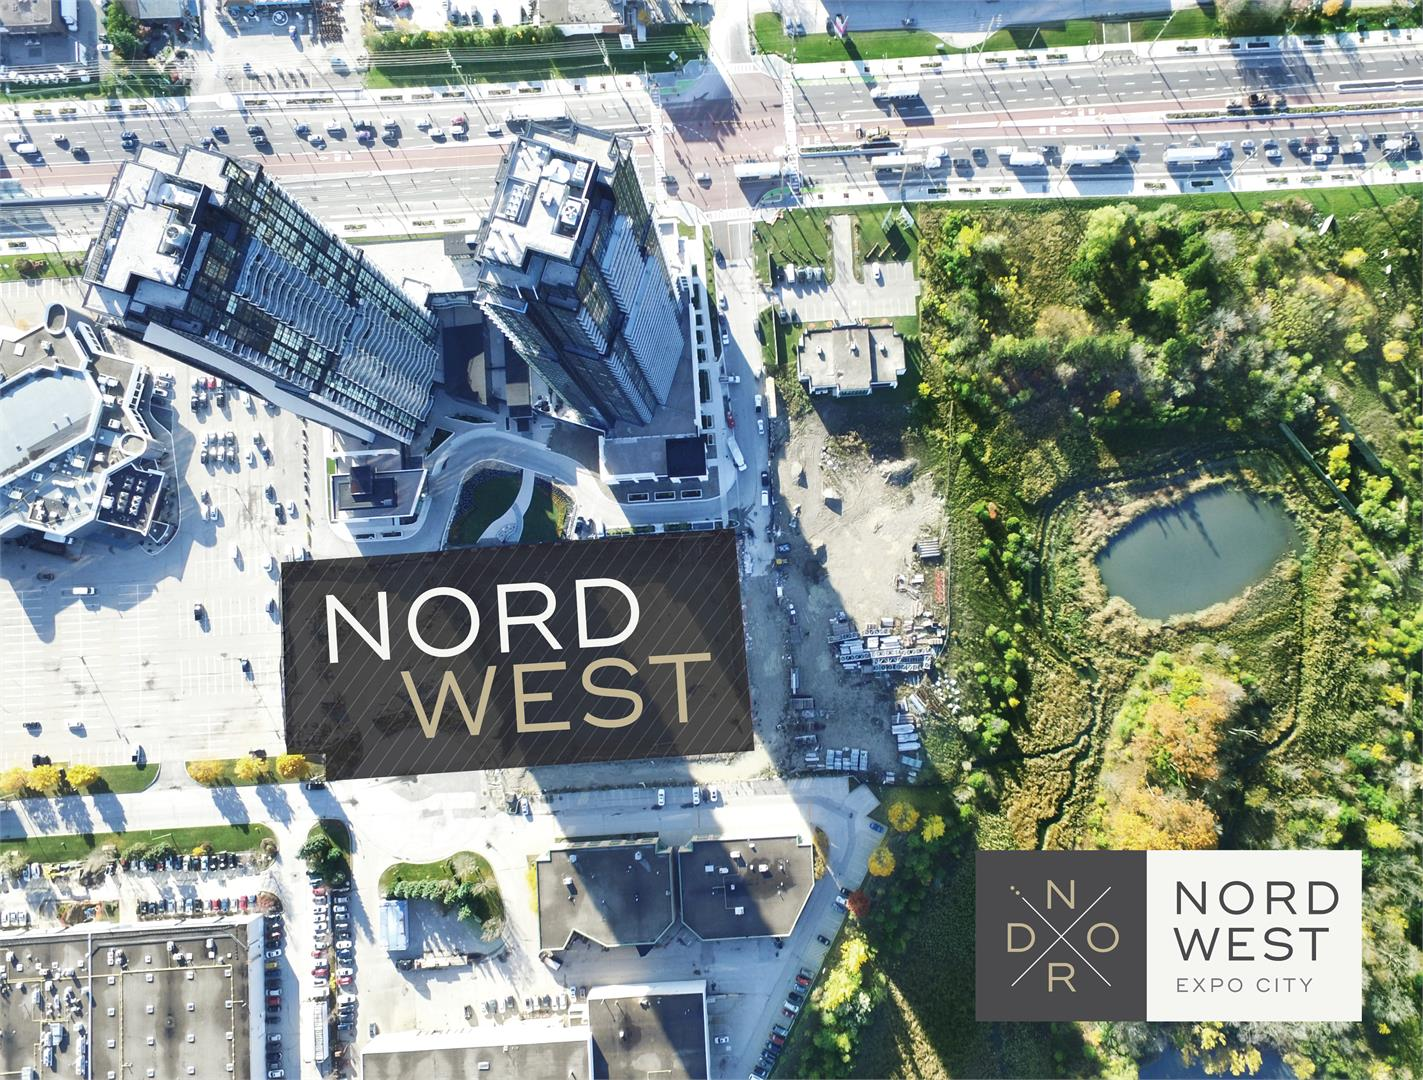 nord_west expo